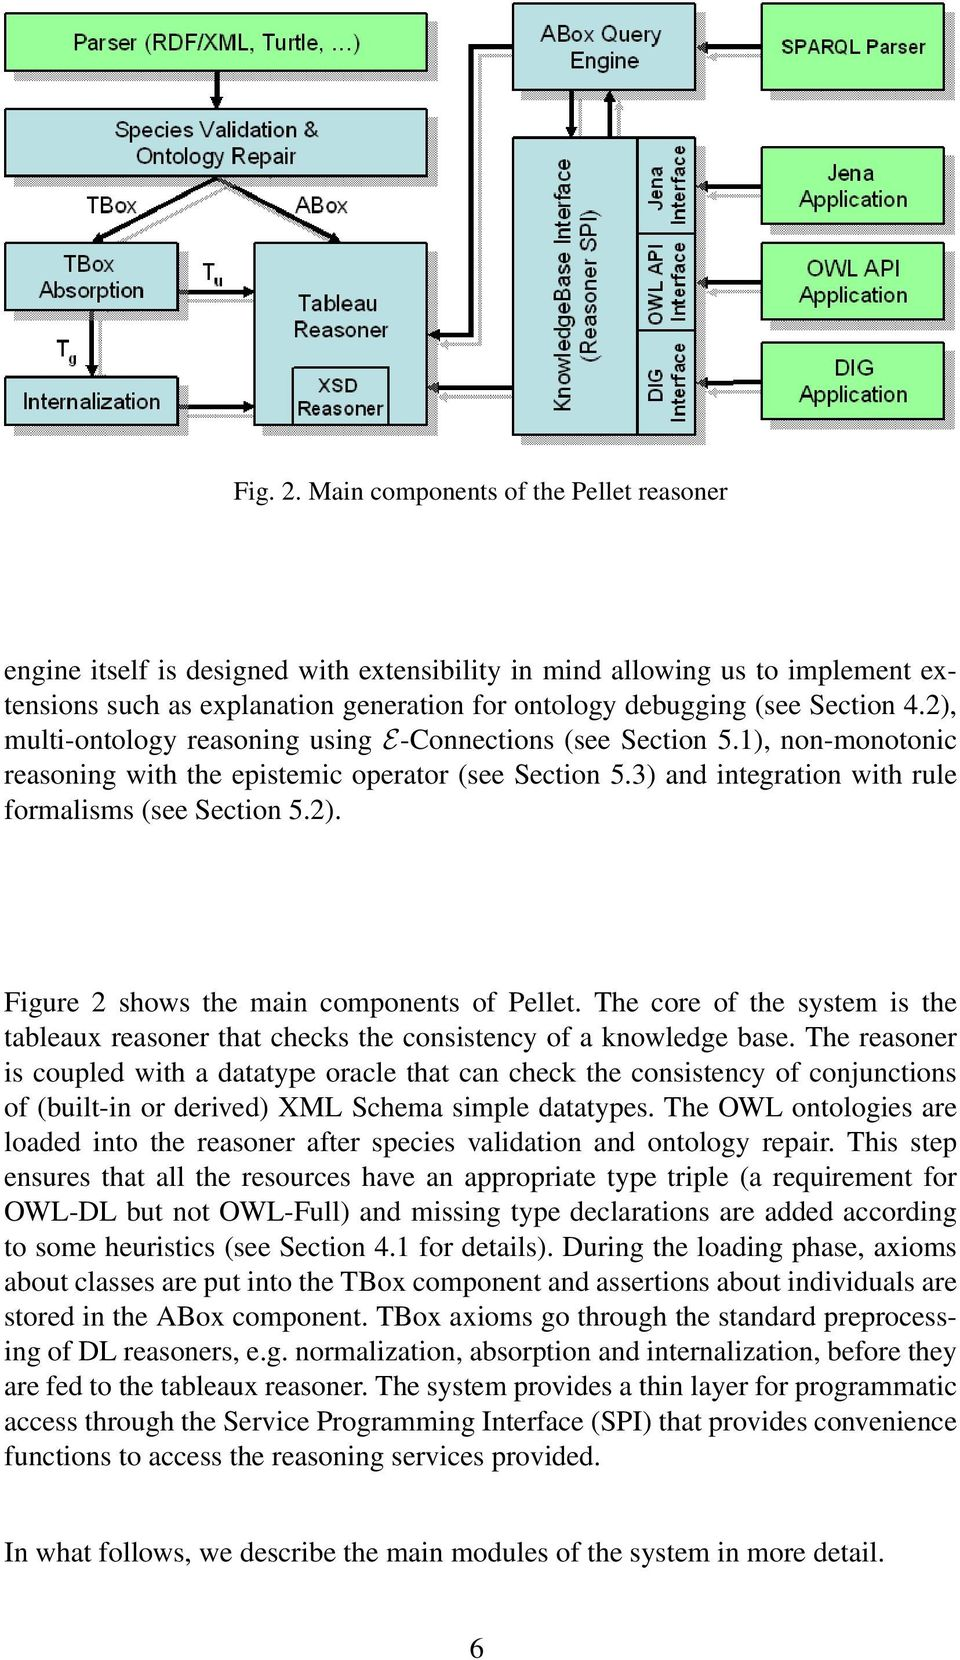 2), multi-ontology reasoning using E-Connections (see Section 5.1), non-monotonic reasoning with the epistemic operator (see Section 5.3) and integration with rule formalisms (see Section 5.2). Figure 2 shows the main components of Pellet.